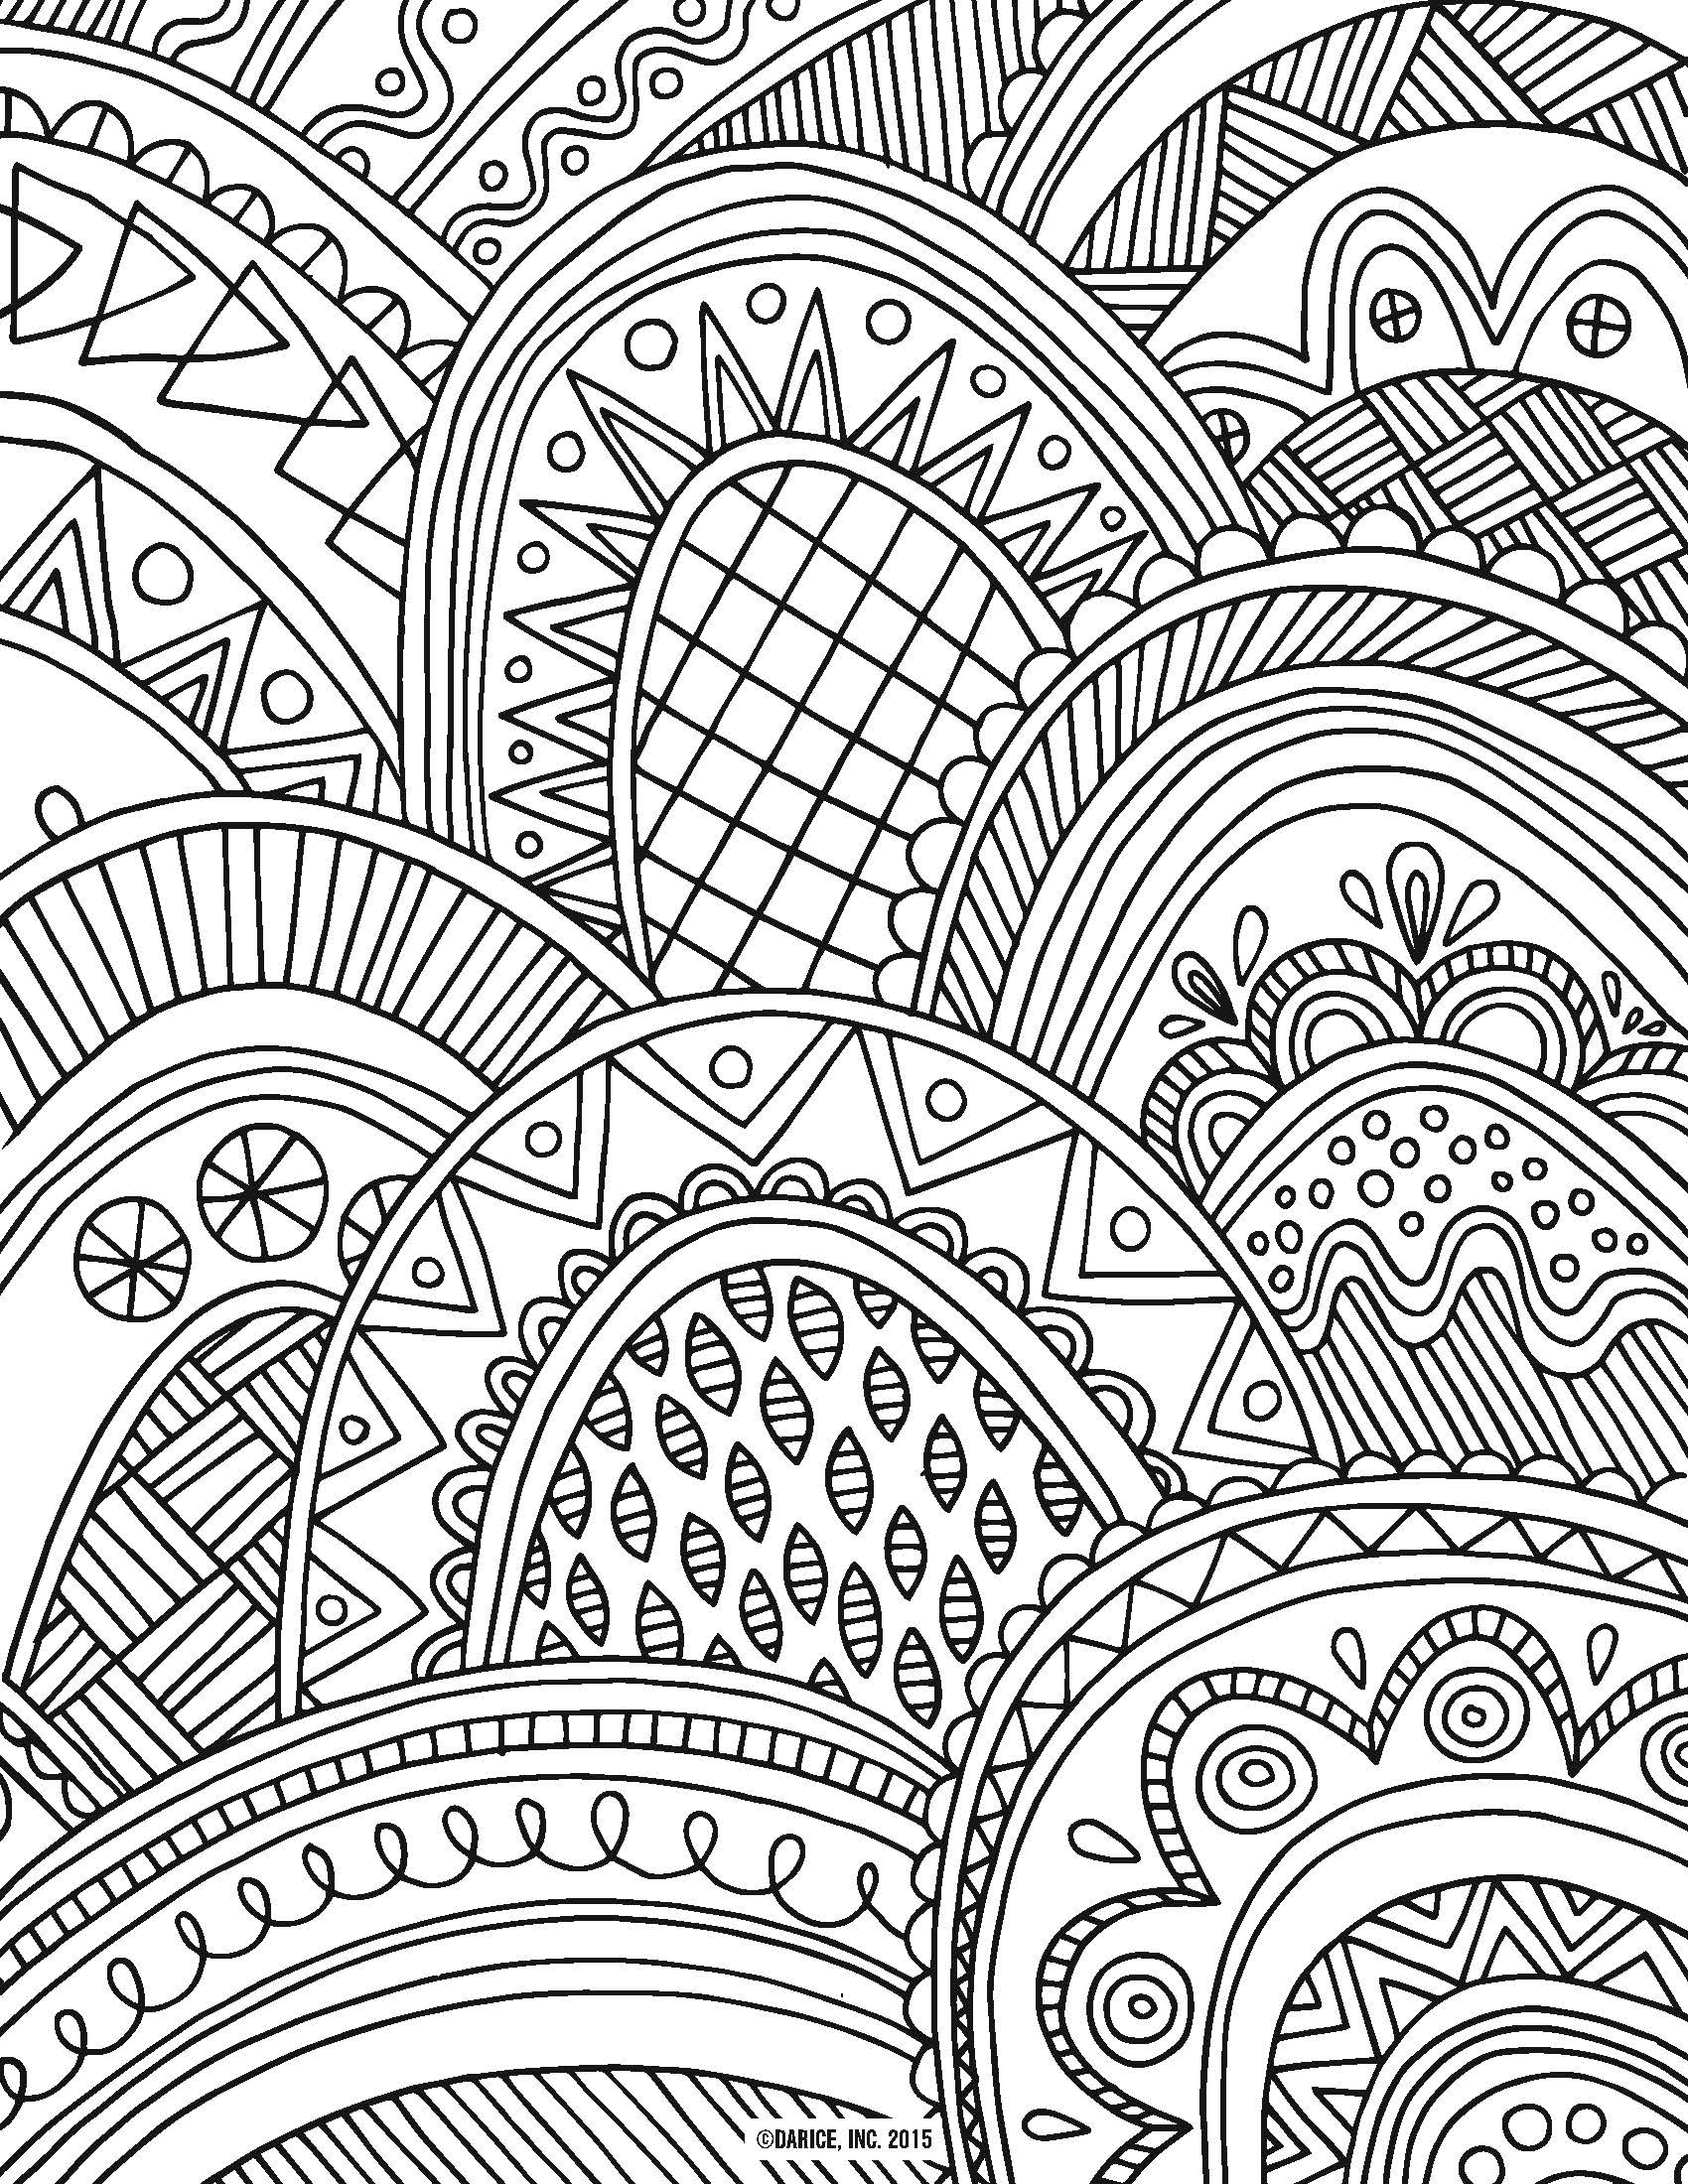 a picture to color coloring pages for girls best coloring pages for kids to picture color a